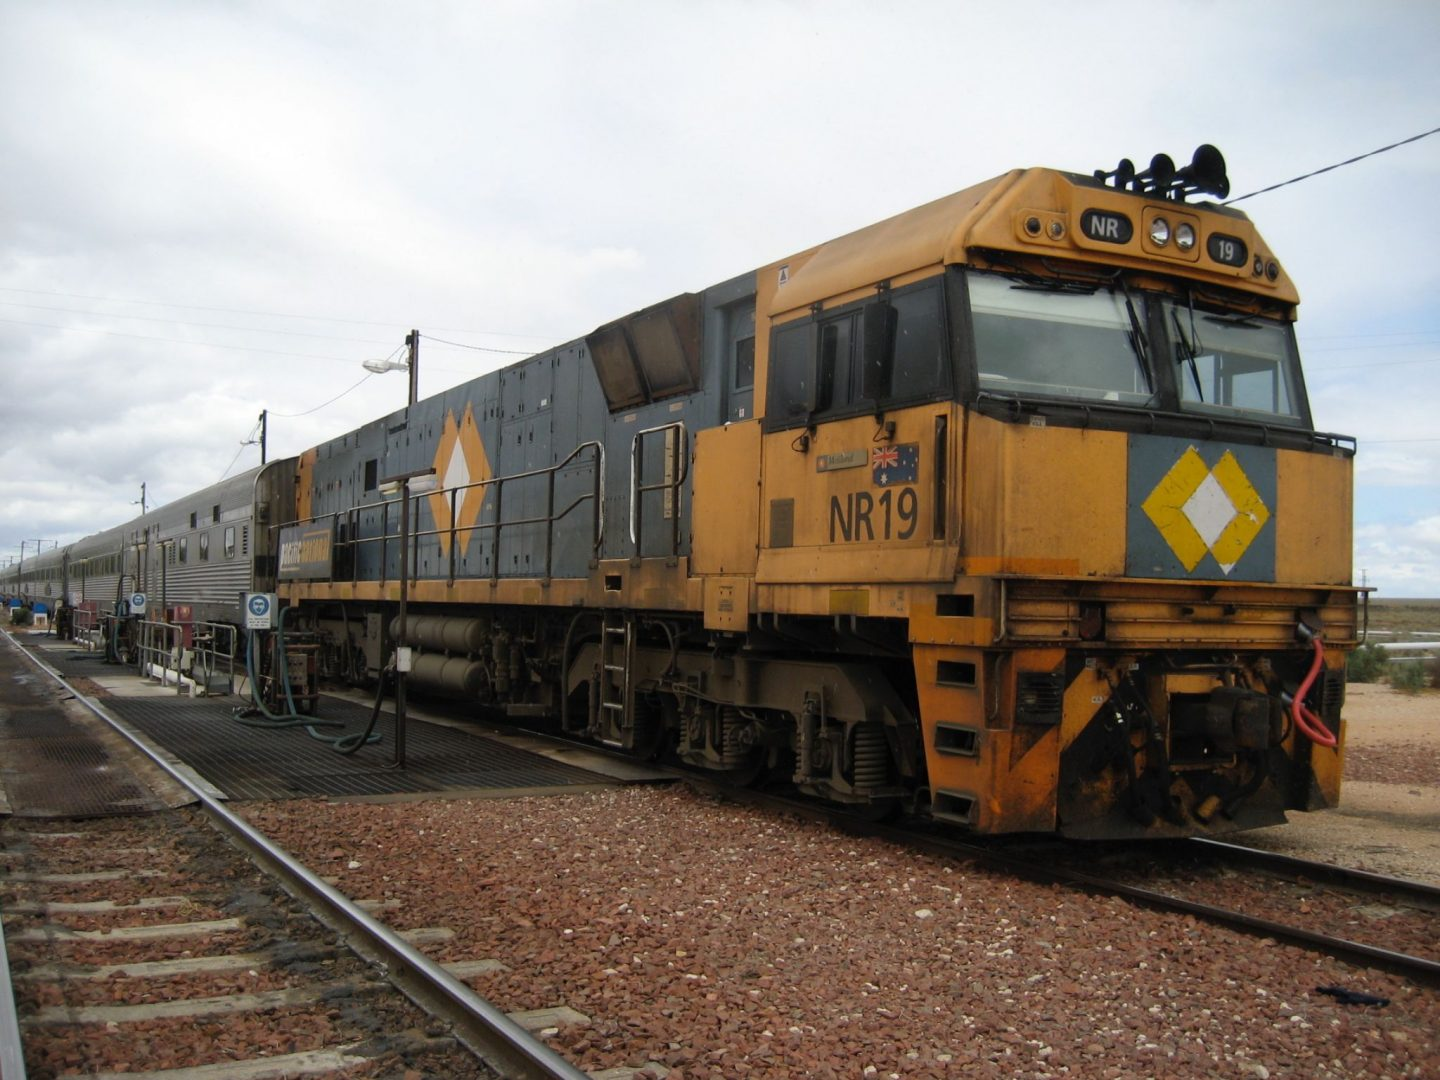 Front of the Indian Pacific train